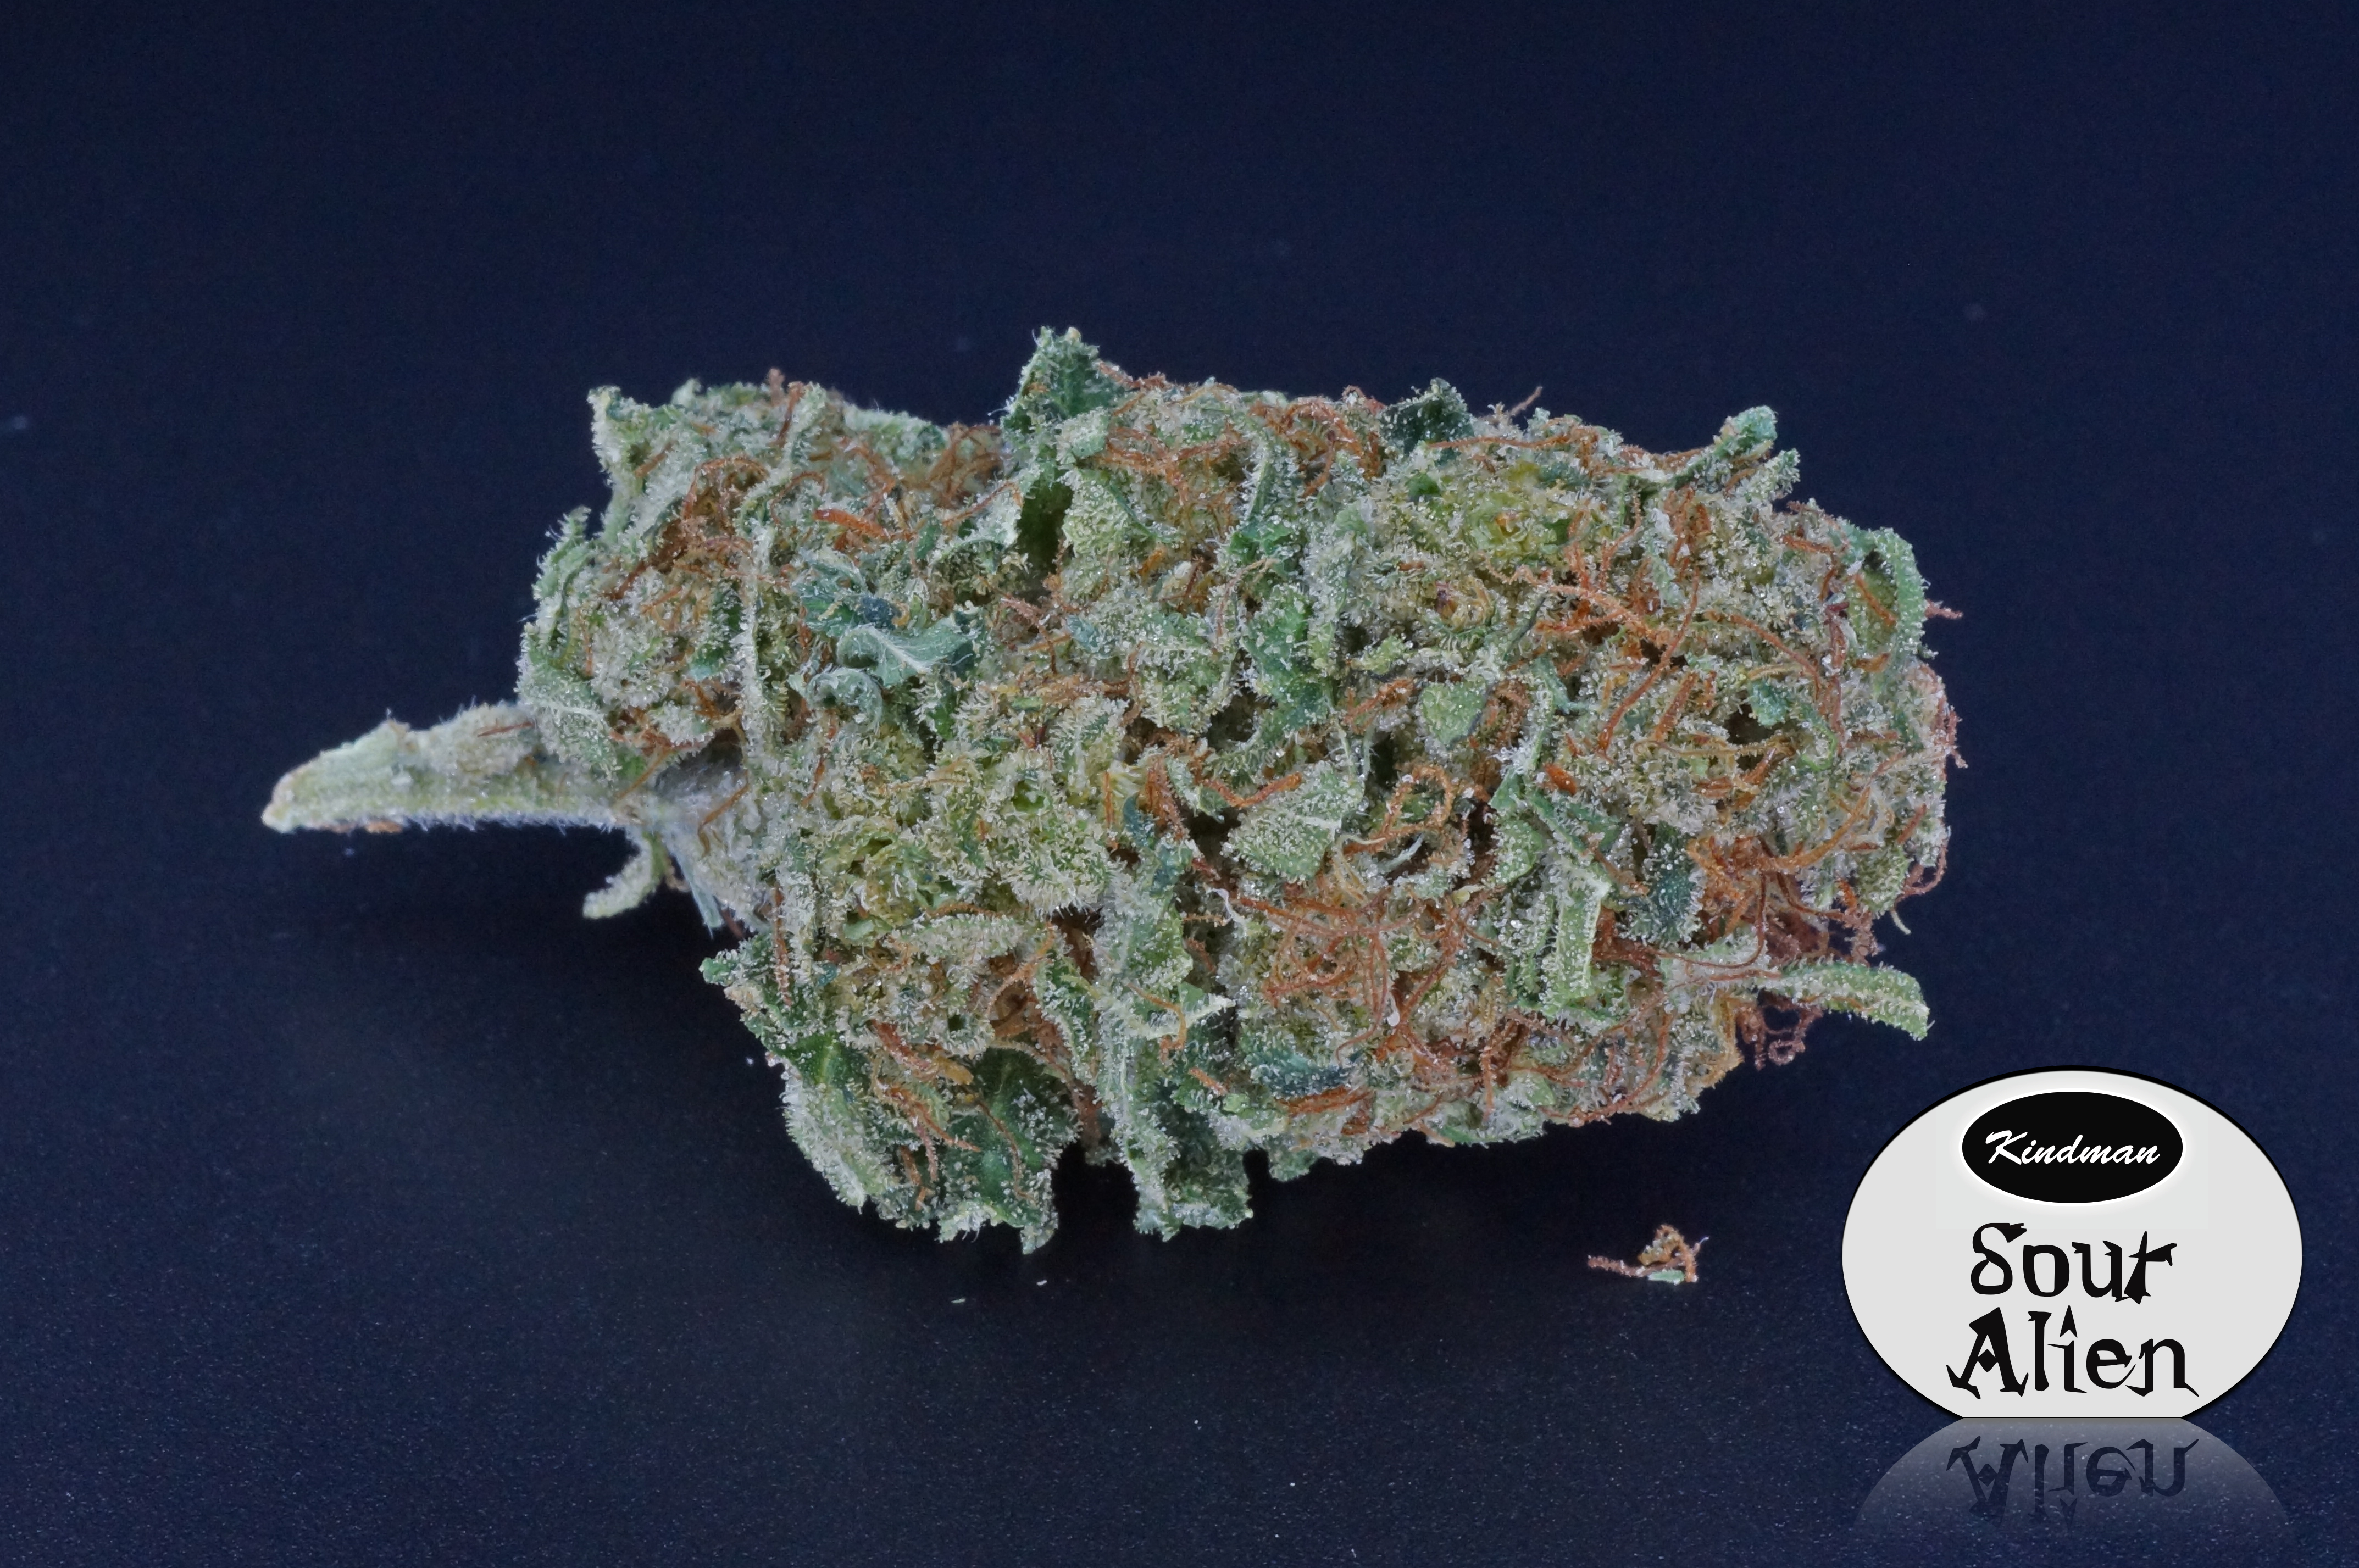 Uncategorized | Legal Dispensary Products | Page 3